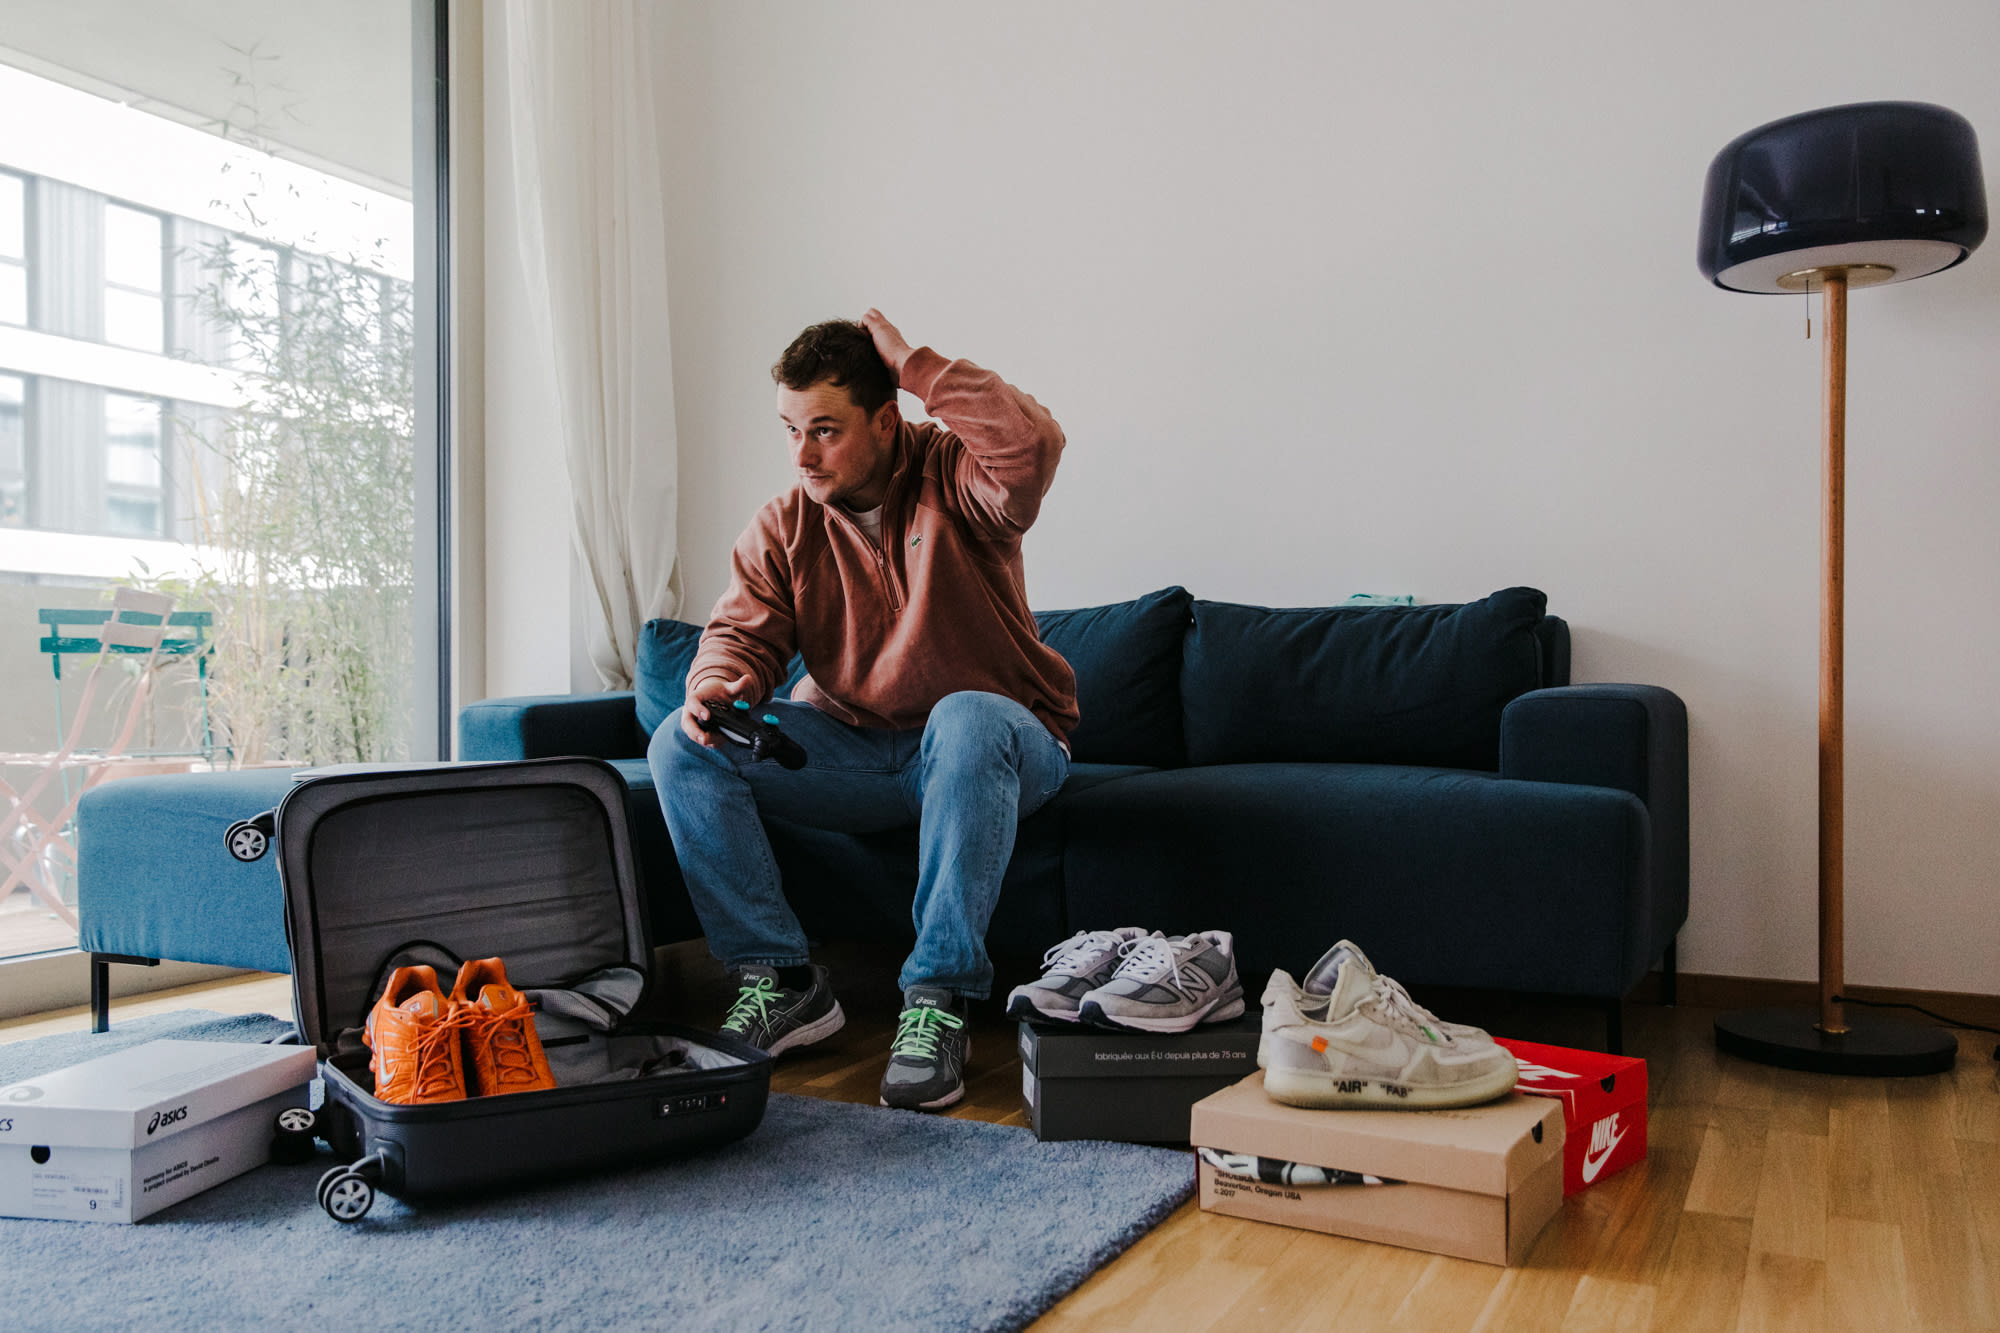 """Flight Case Sneakers: Fabian Gorsler at Home in Berlin, image features Nike Shox TL, Off-White x Nike """"The Ten"""" Air Force 1, New Balance 990v5, and ASICS x Harmony GEL-Venture 6"""